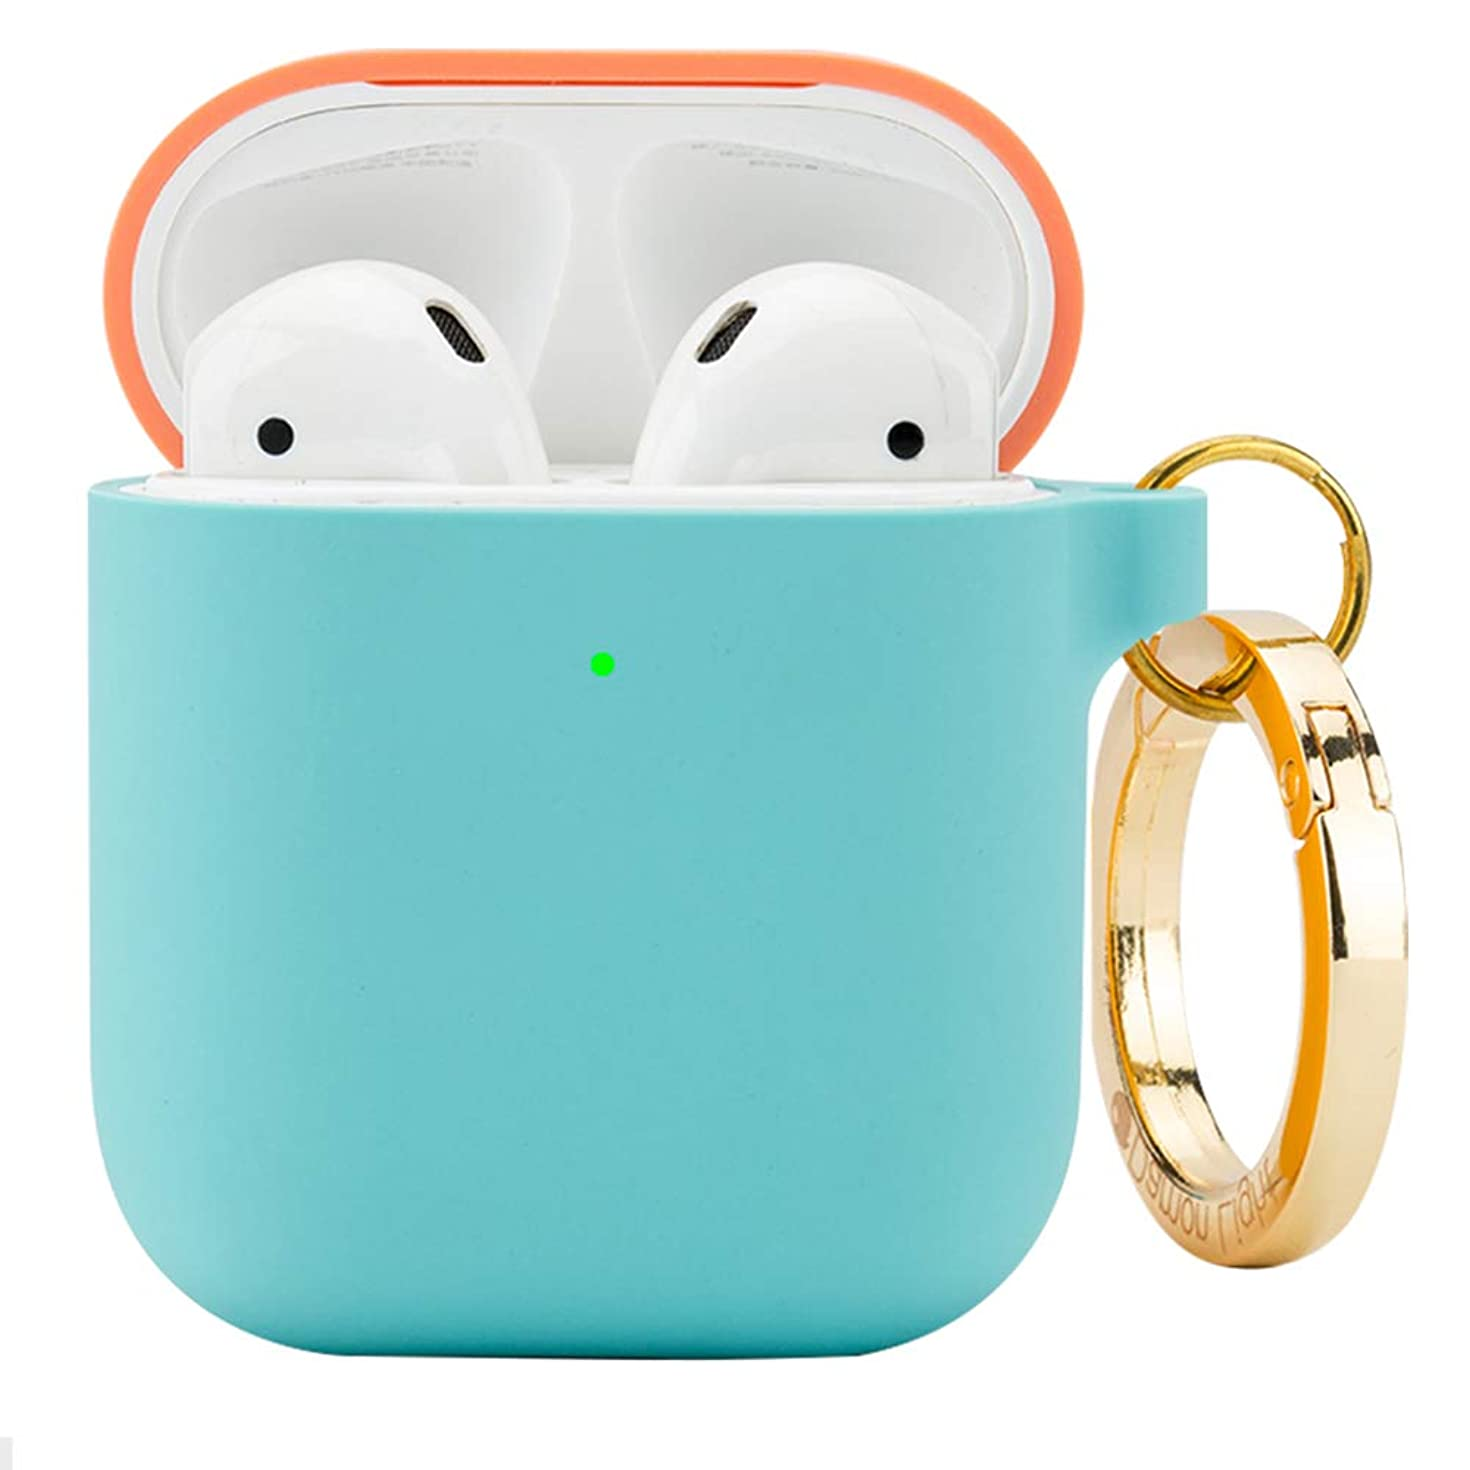 DamonLight Premium Silicone Airpods Case with Carabiner [Front LED Visible][with no Hinge] Full Protective Cover Skin Compatible with Apple Airpods 1&2 (Pink+Ice Blue)